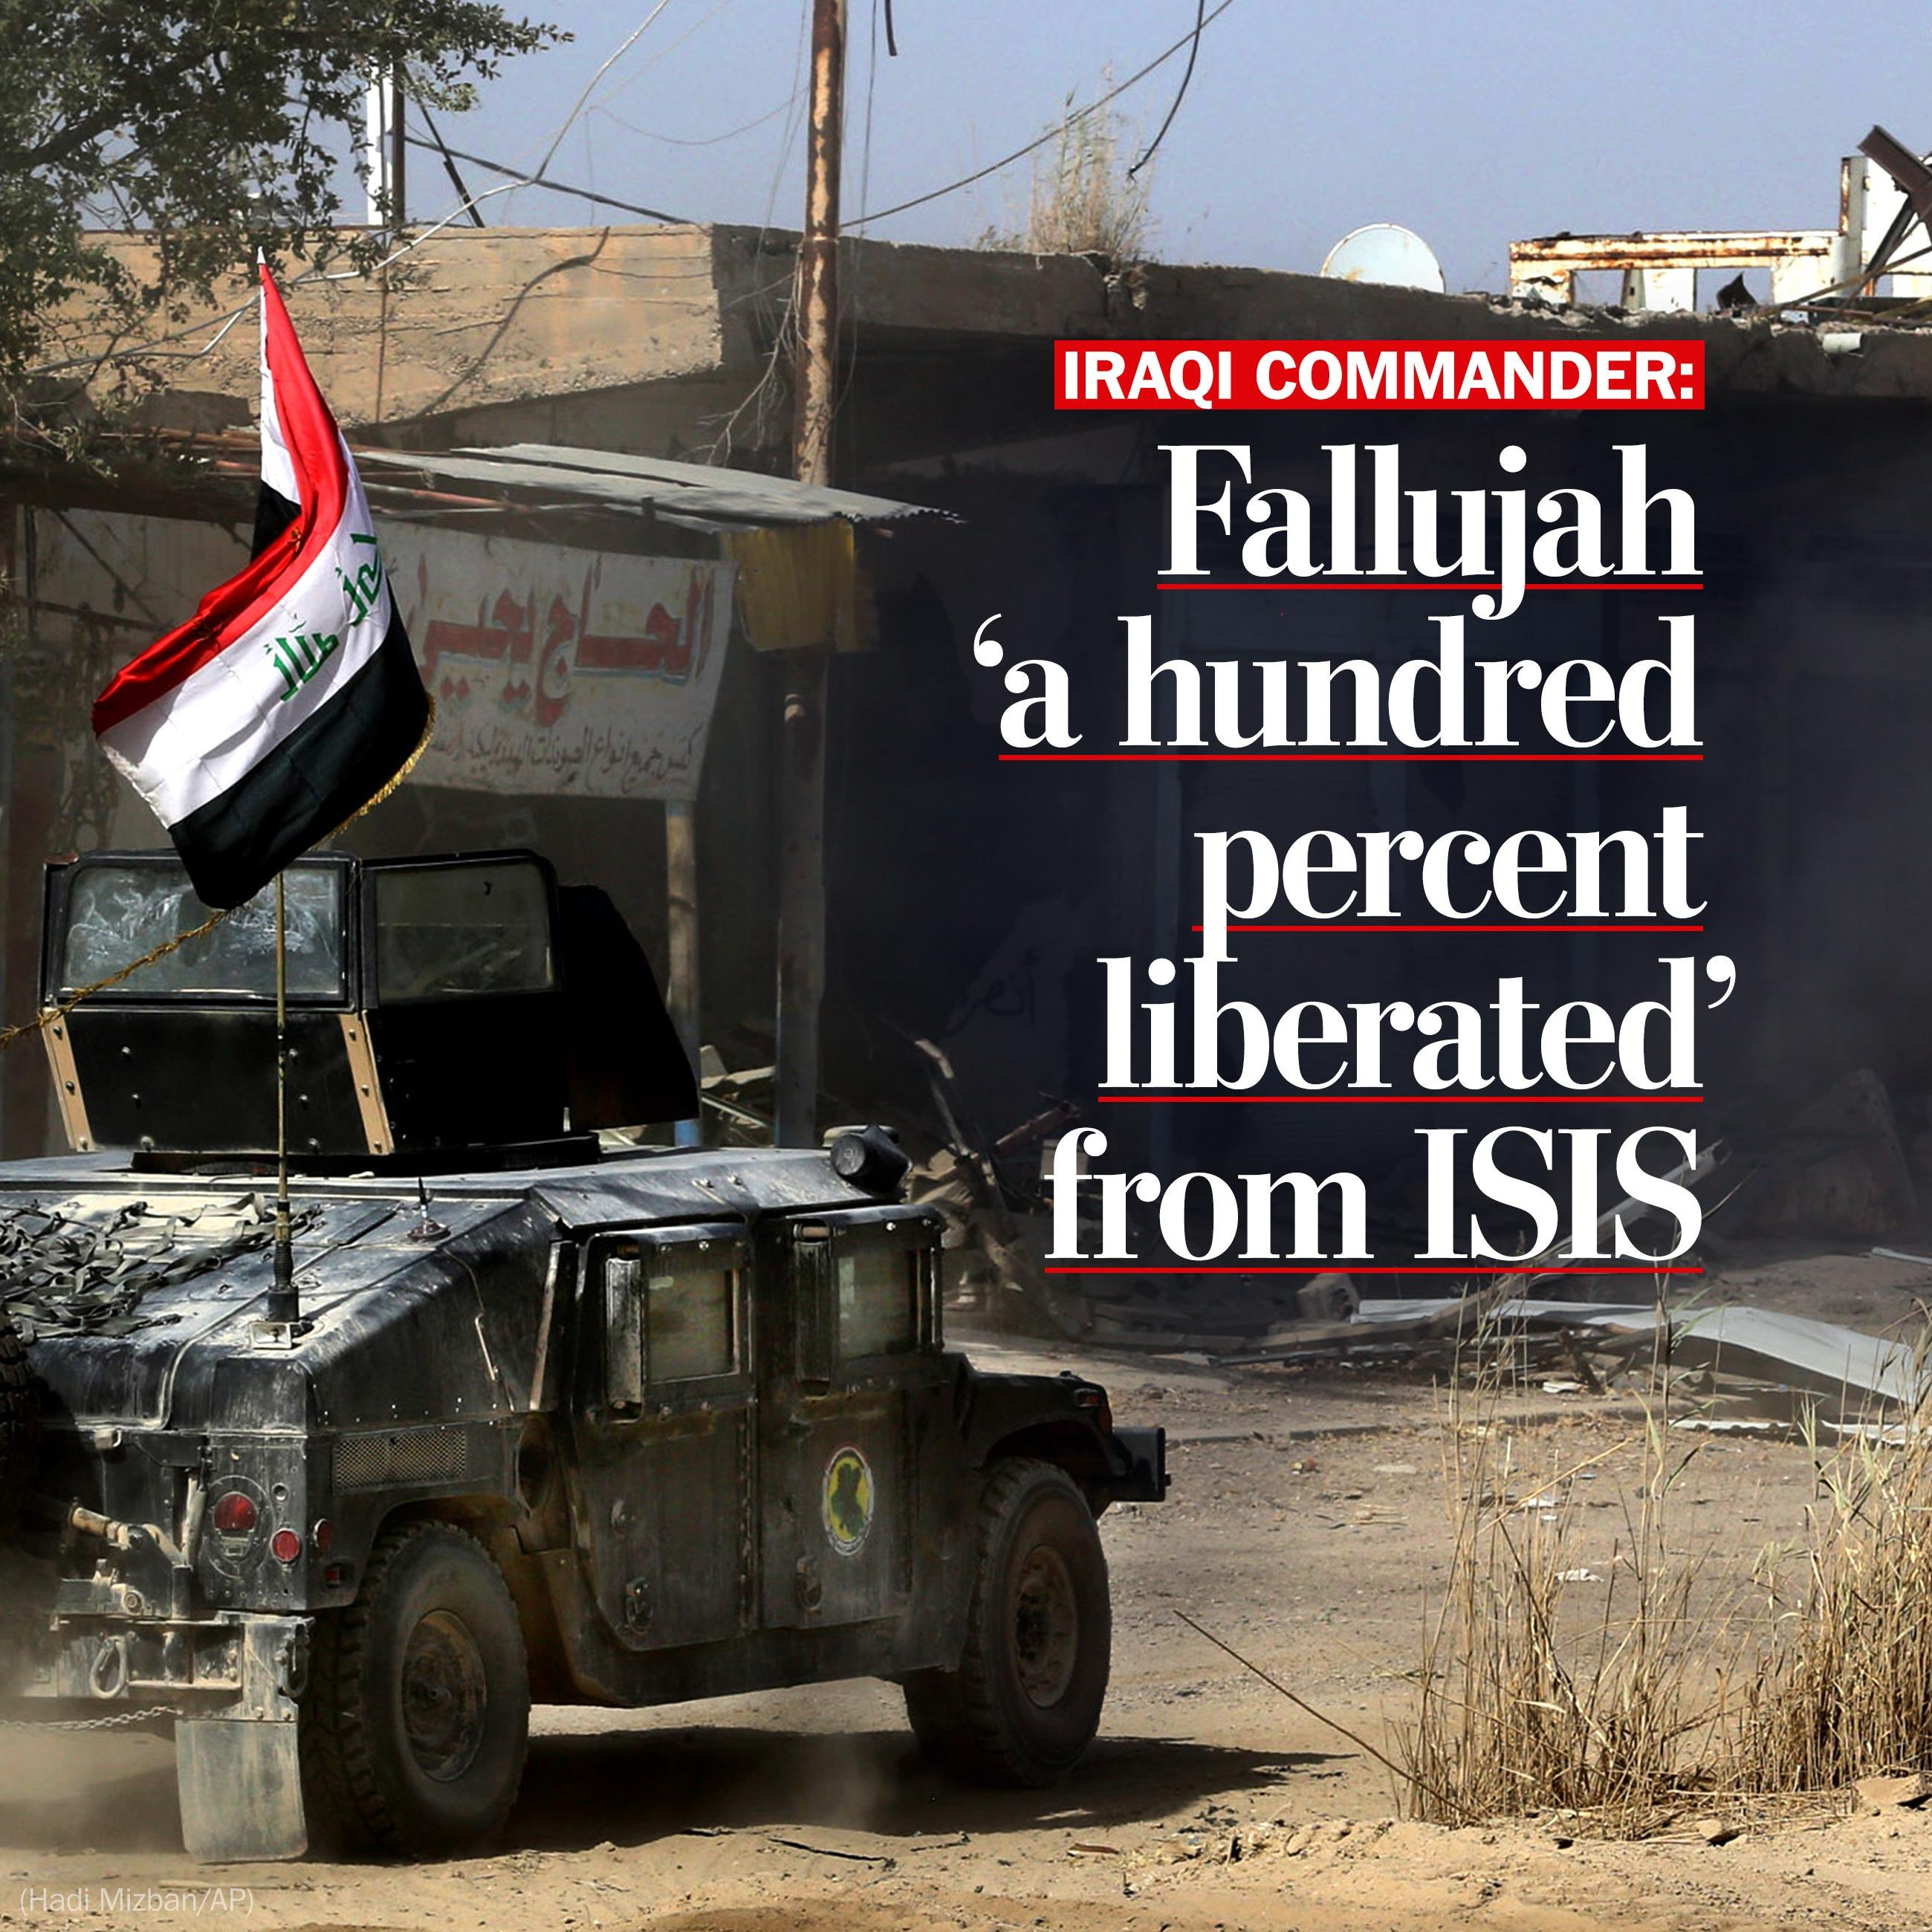 Iraqi forces expel Islamic State from Fallujah